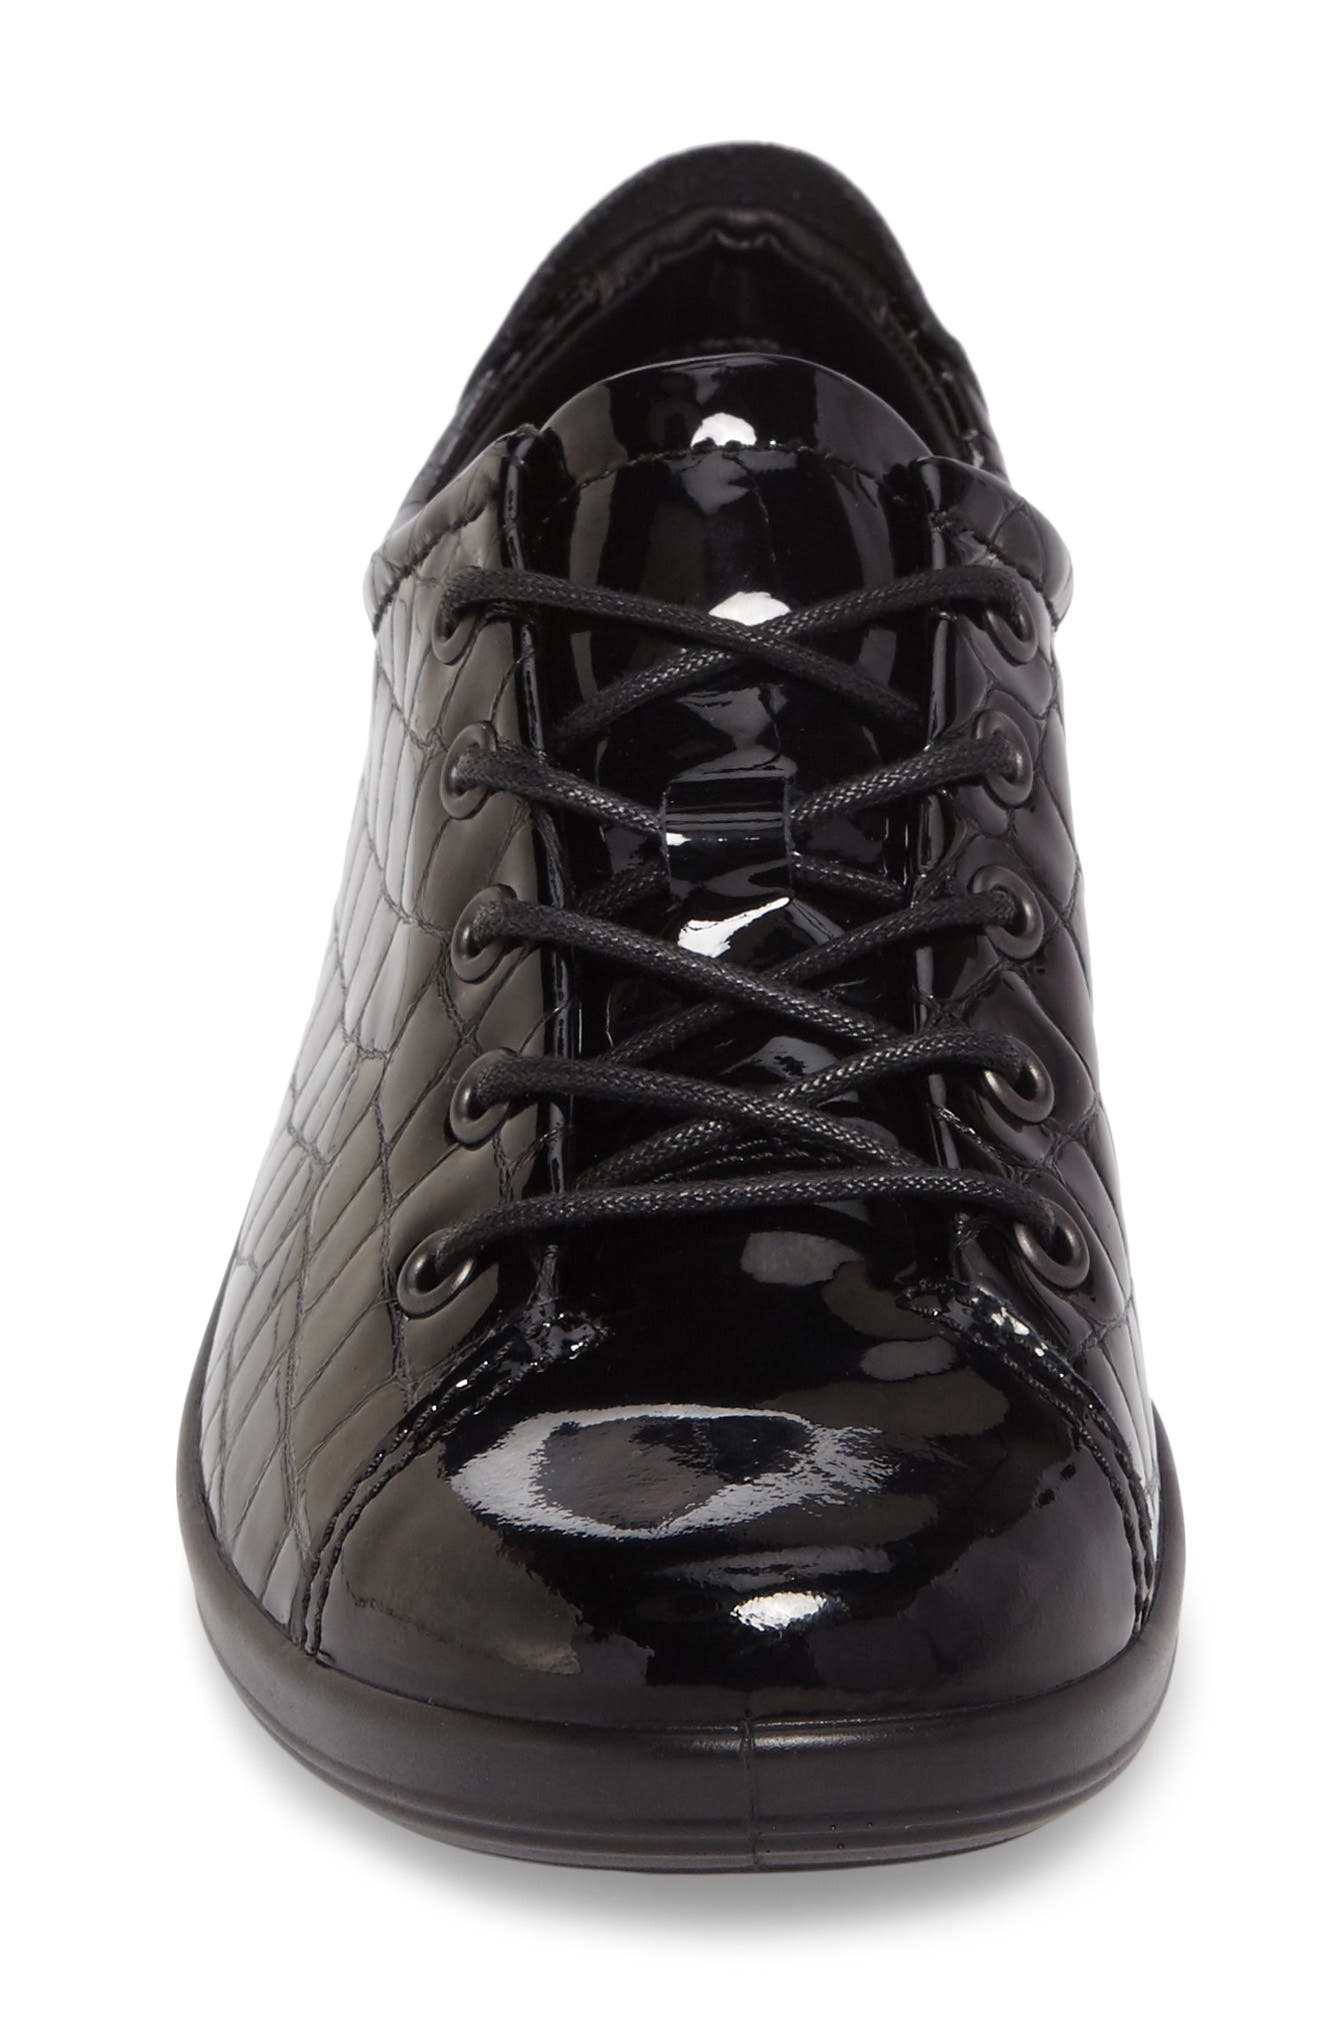 'Soft 2.0' Sneaker,                             Alternate thumbnail 4, color,                             Black Patent Leather